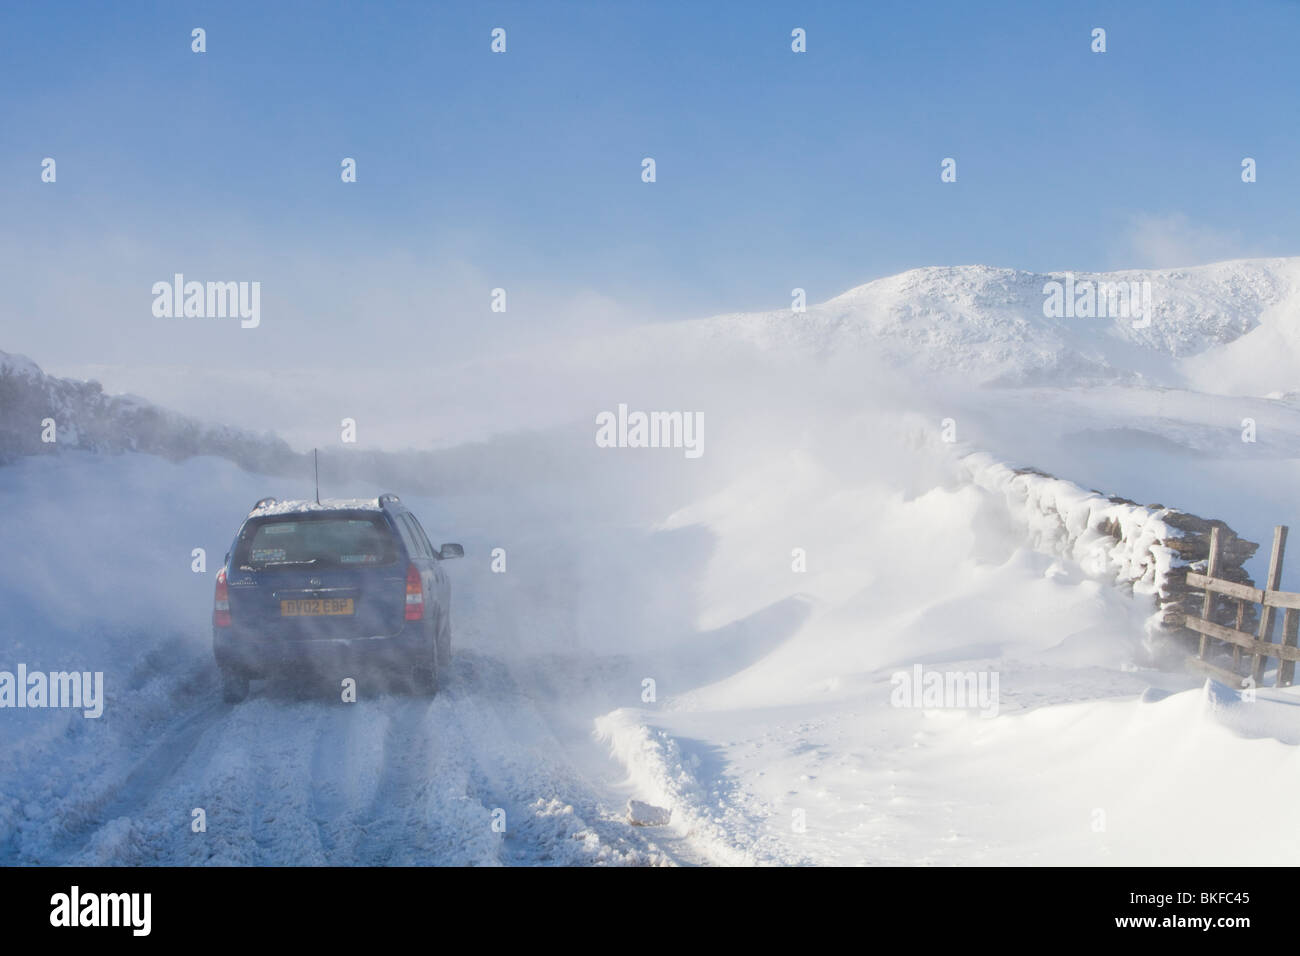 Wind Blown Snow Stock Photos & Wind Blown Snow Stock Images - Alamy